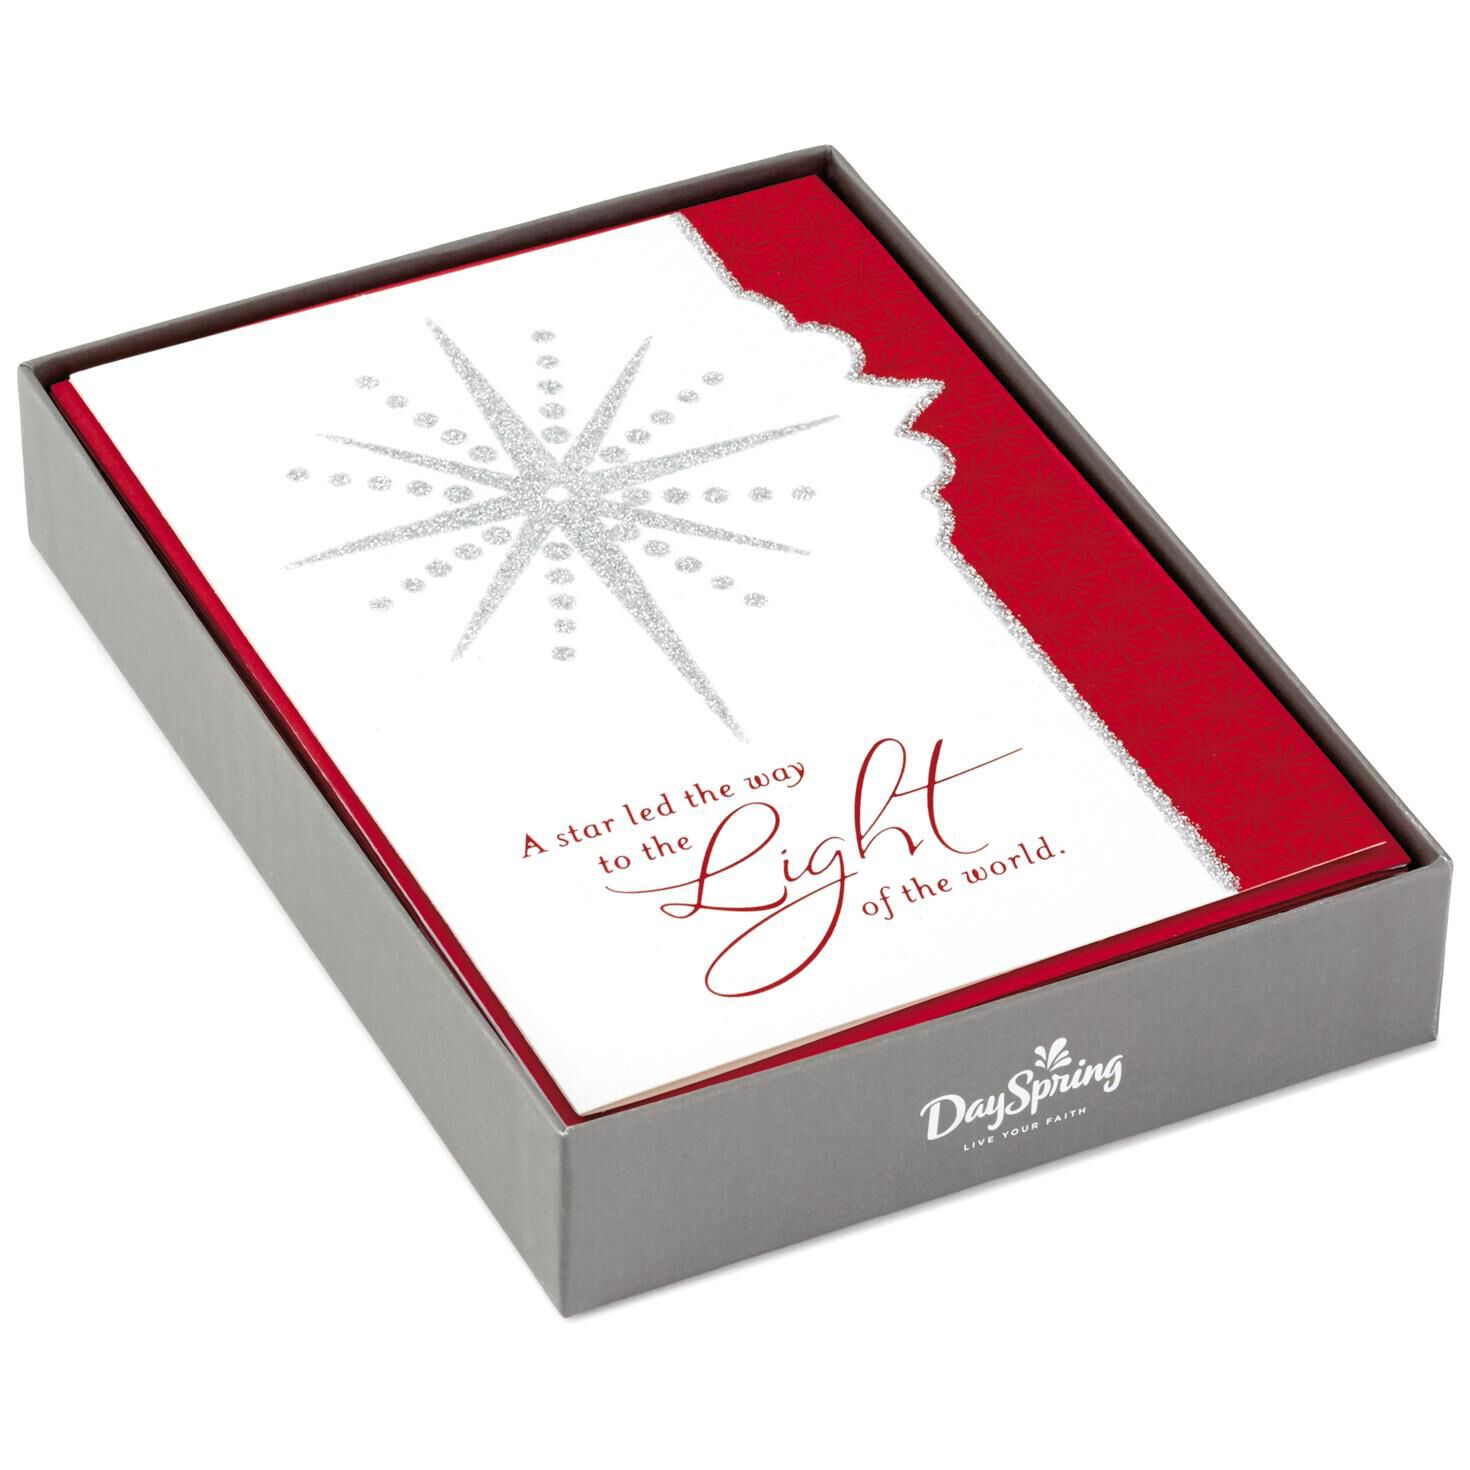 light of the world religious christmas cards box of 16 boxed cards hallmark - Religious Christmas Cards